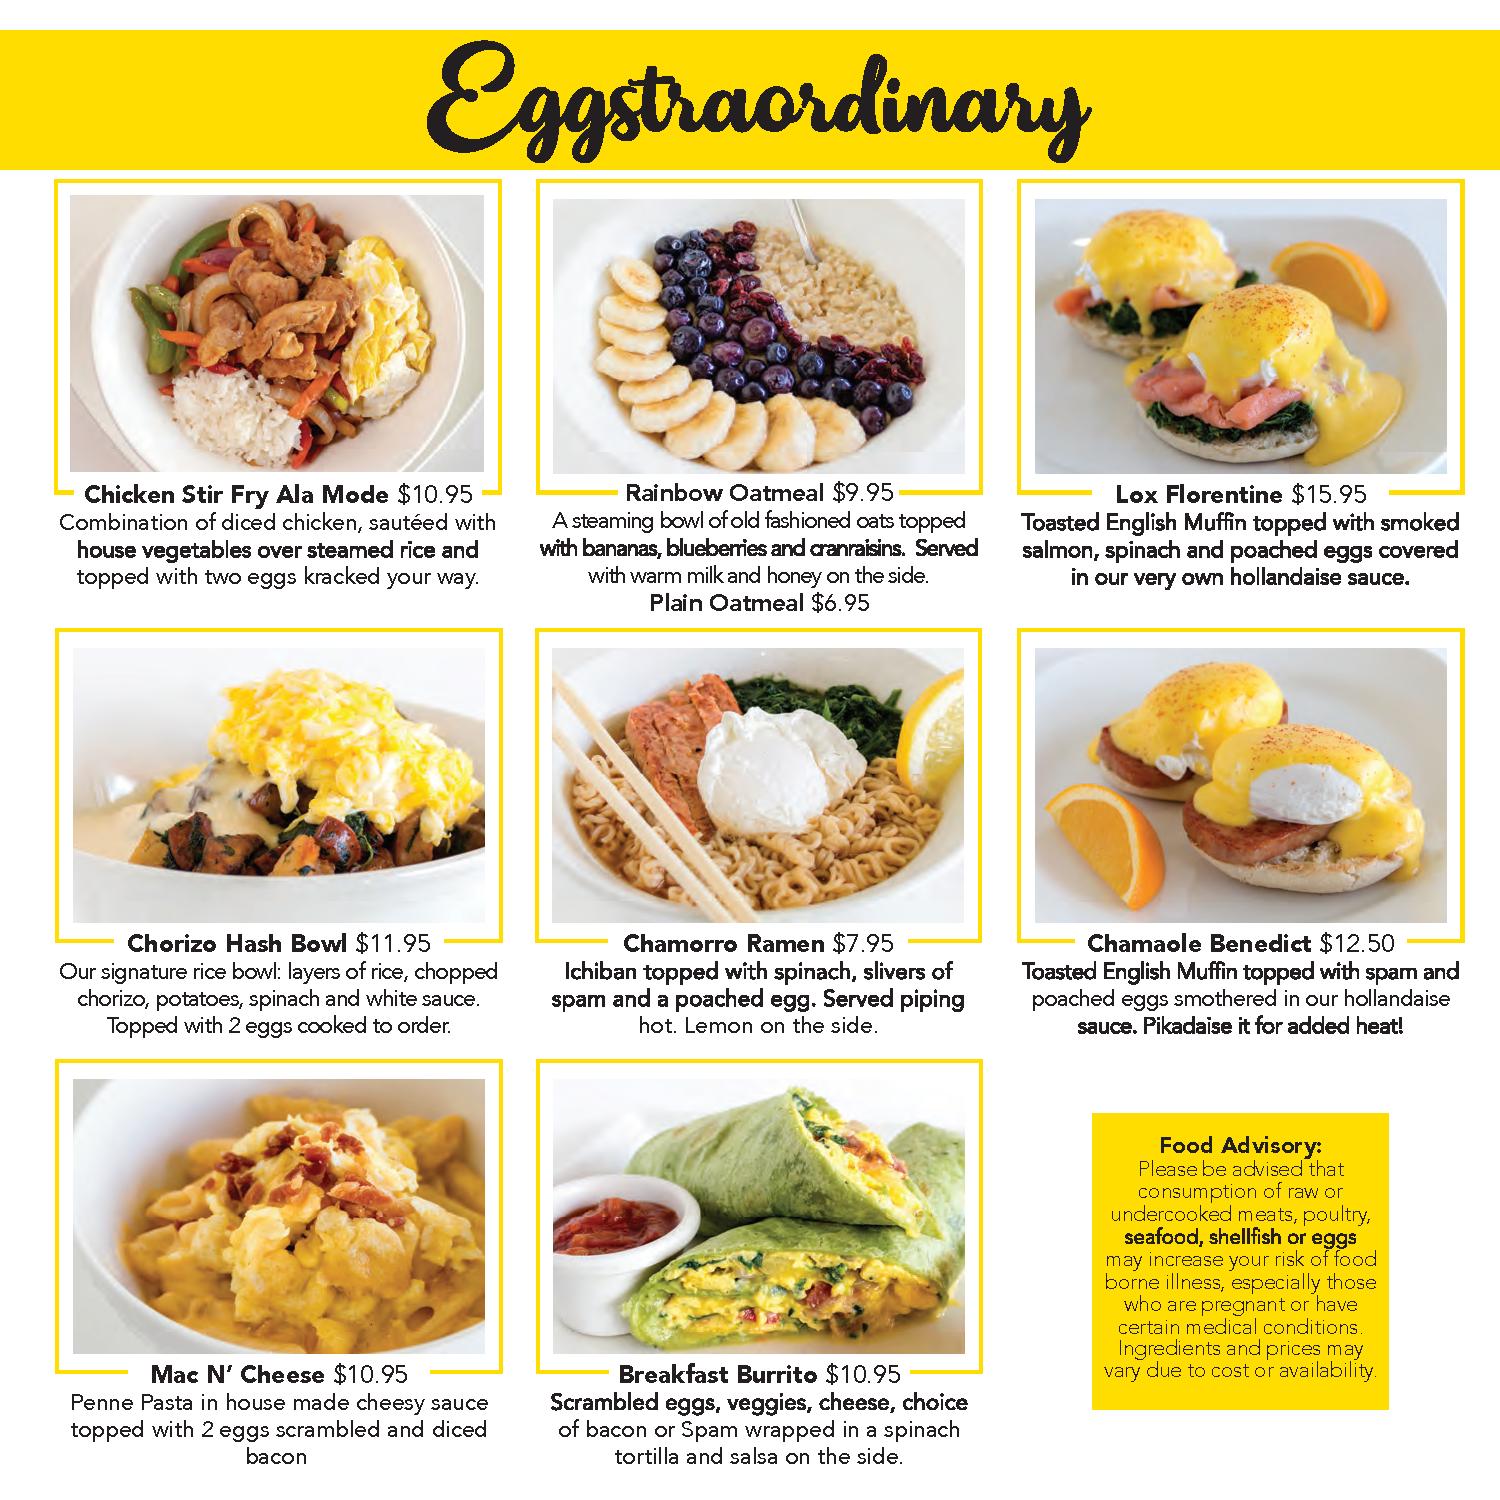 72670 Kracked Egg Menu PROOF reduced_Page_05.png